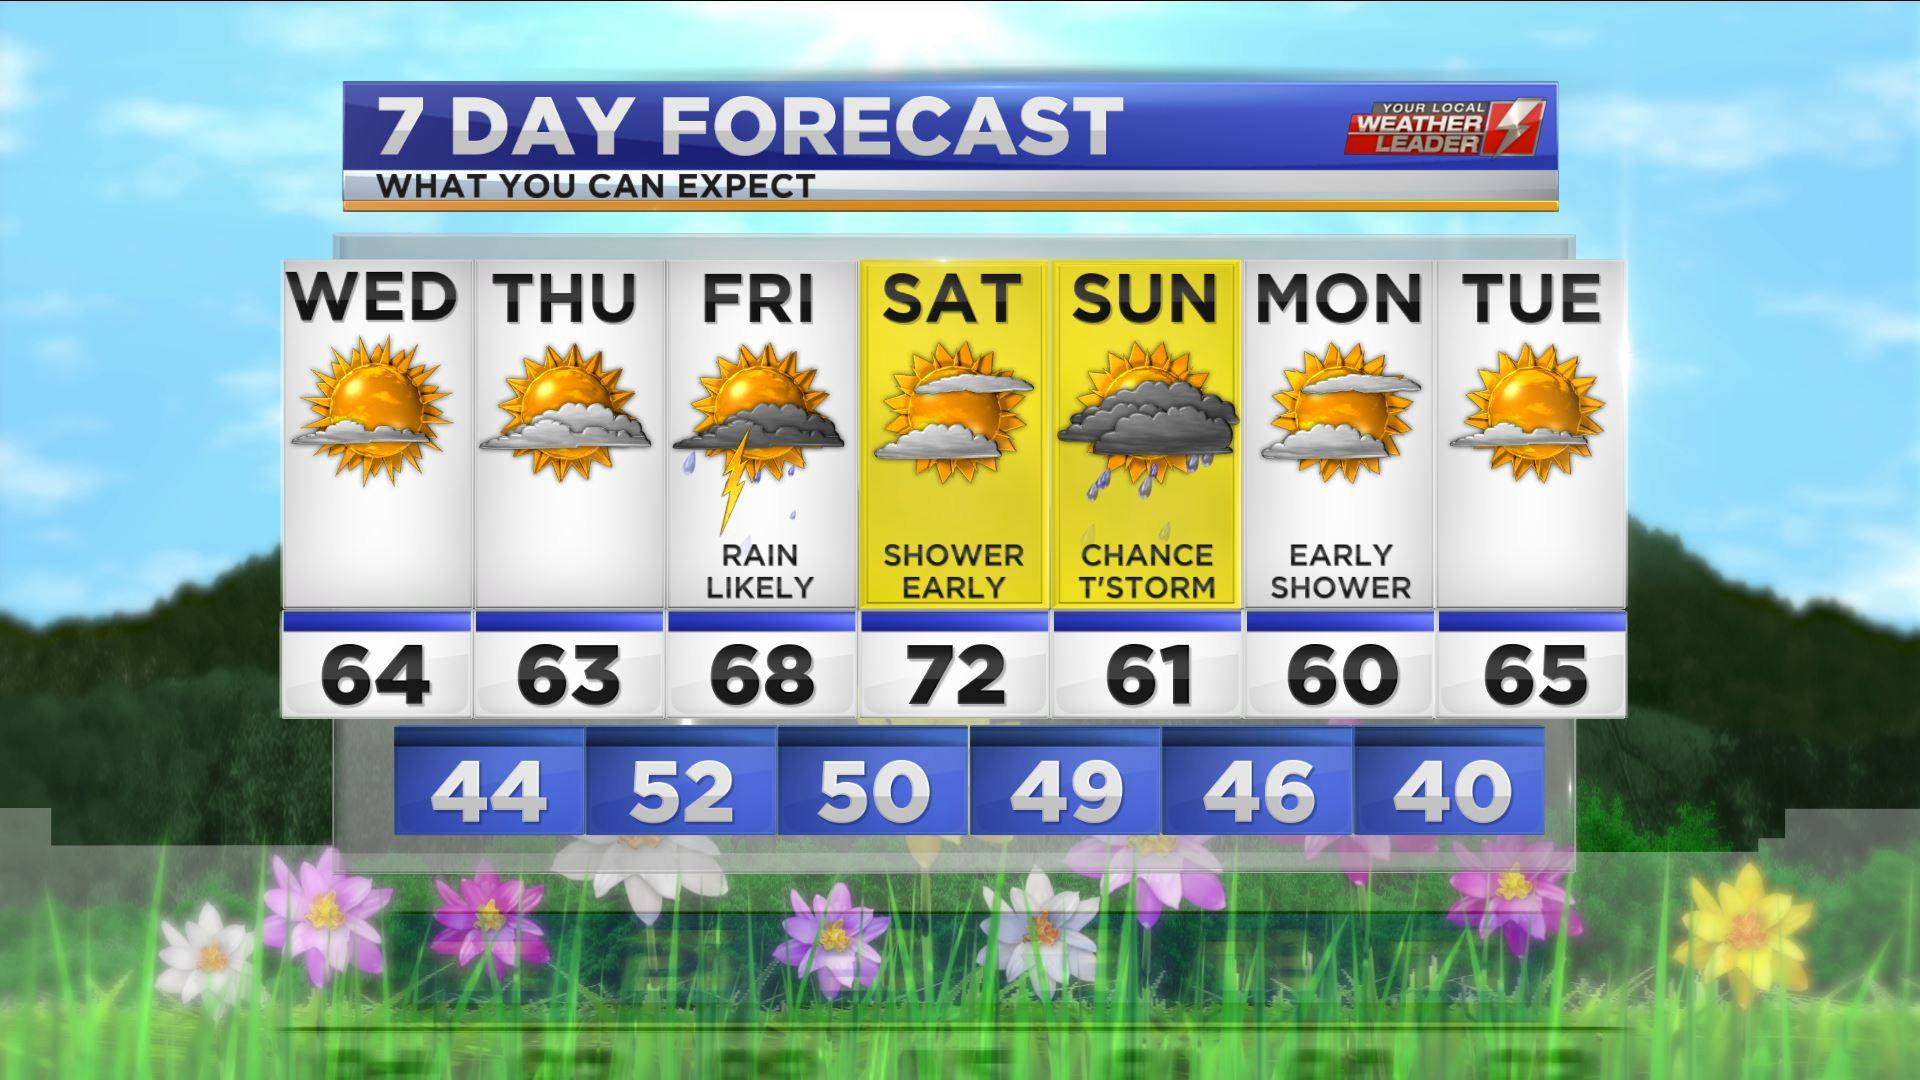 Your 7-day Forecast for Wednesday 10 April 2019